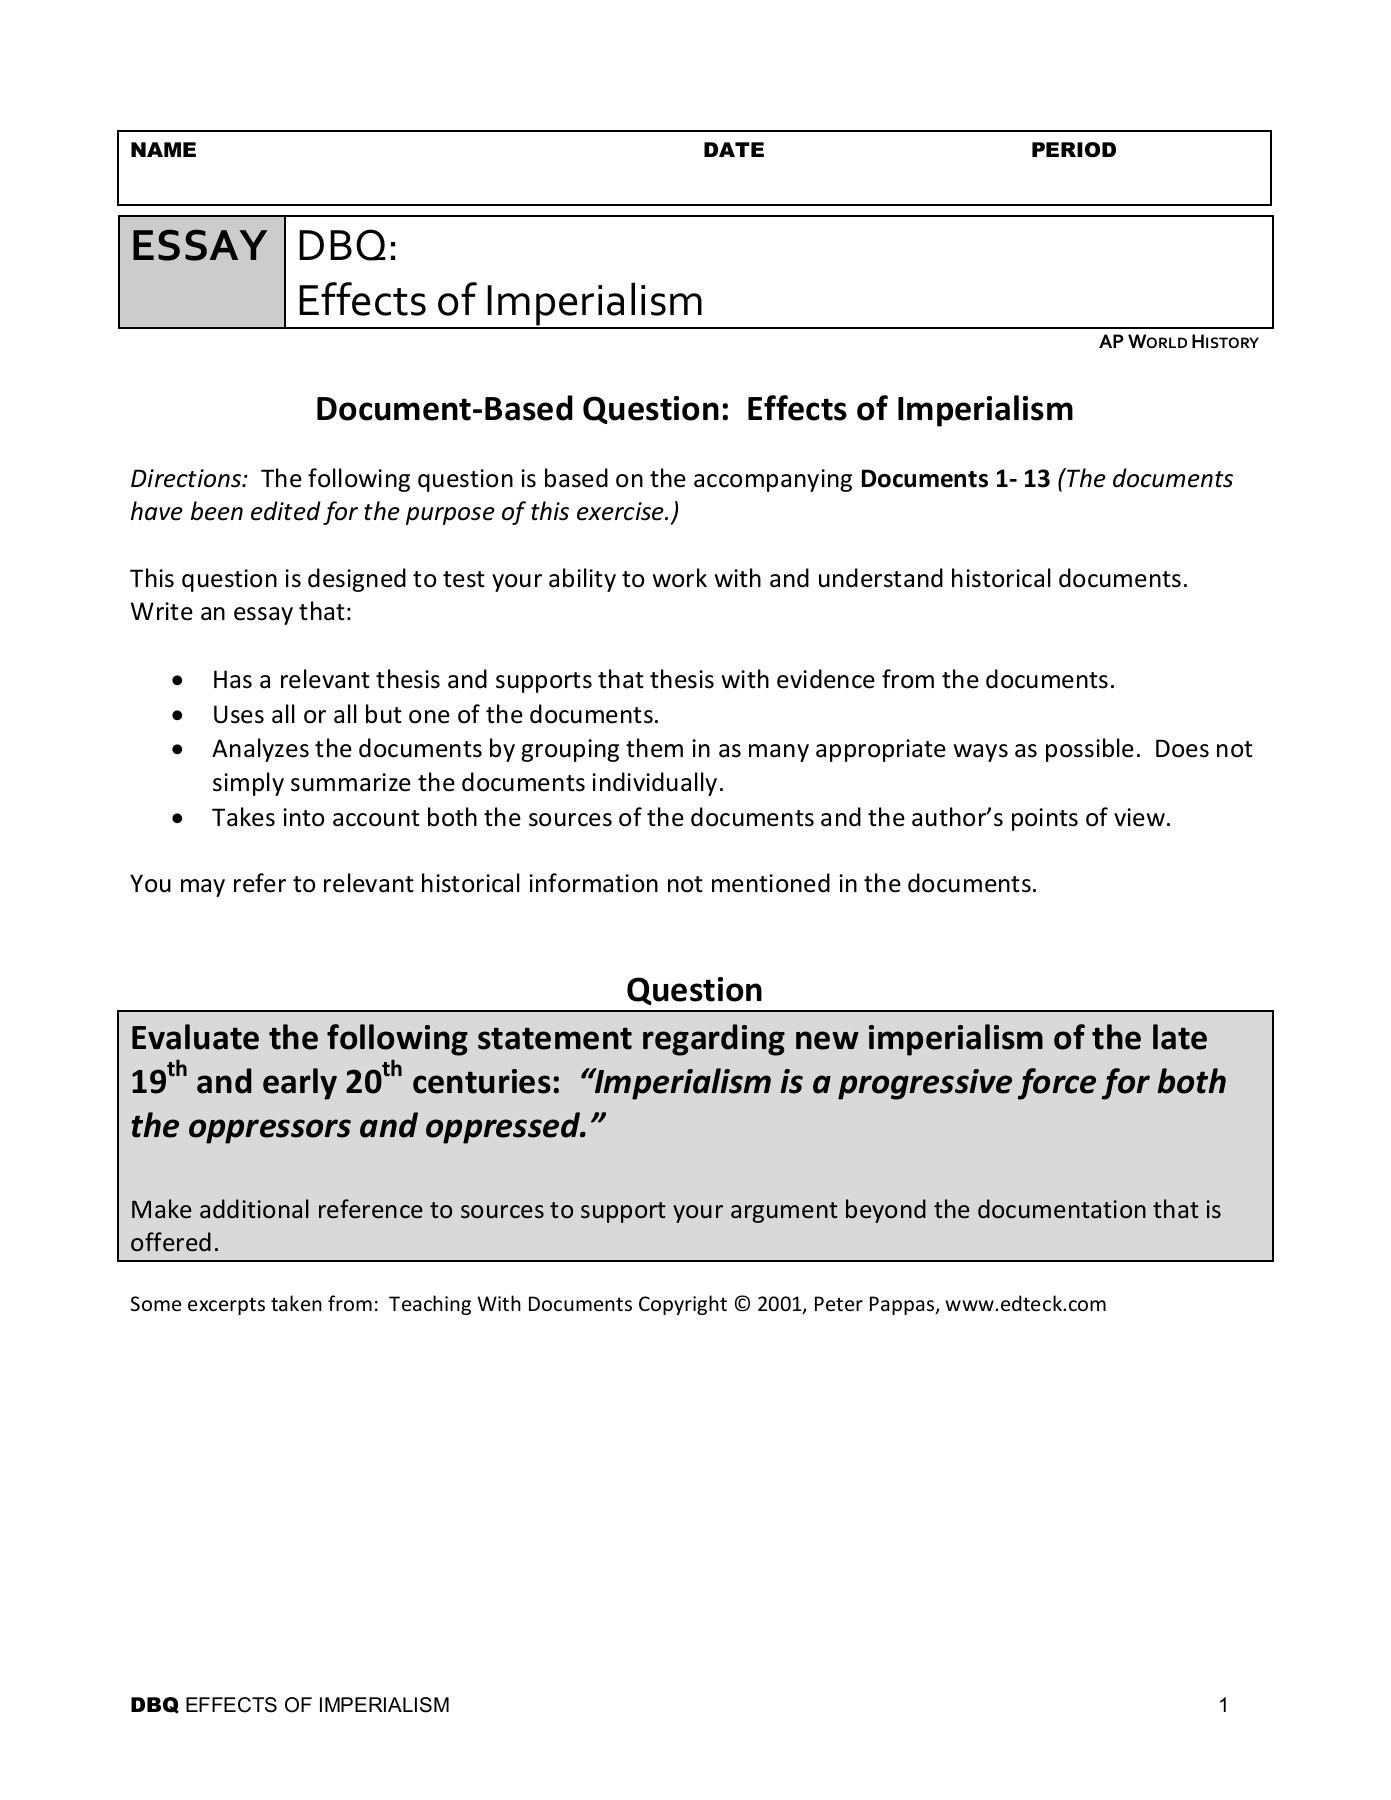 005 Imperialism Essay Example Awful Hook Topics Thesis Statement Full